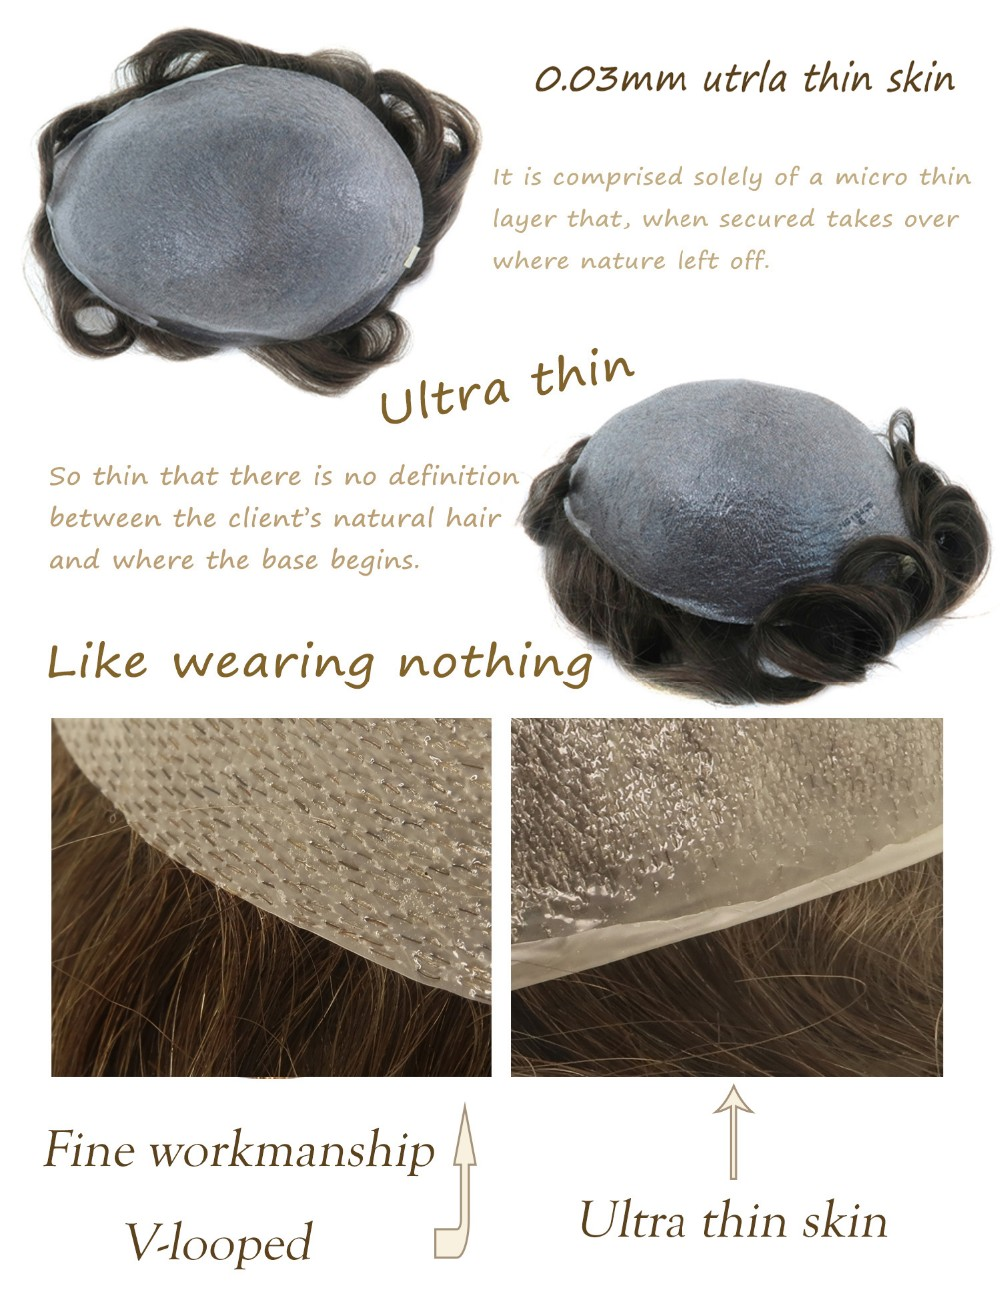 Zhongfa Indian Remy Hair Toupee Transparent 0 03mm Ultra Thin Skin V-looped  Hair System - Buy Hair Piece,Hair System,Toupee Product on Alibaba com